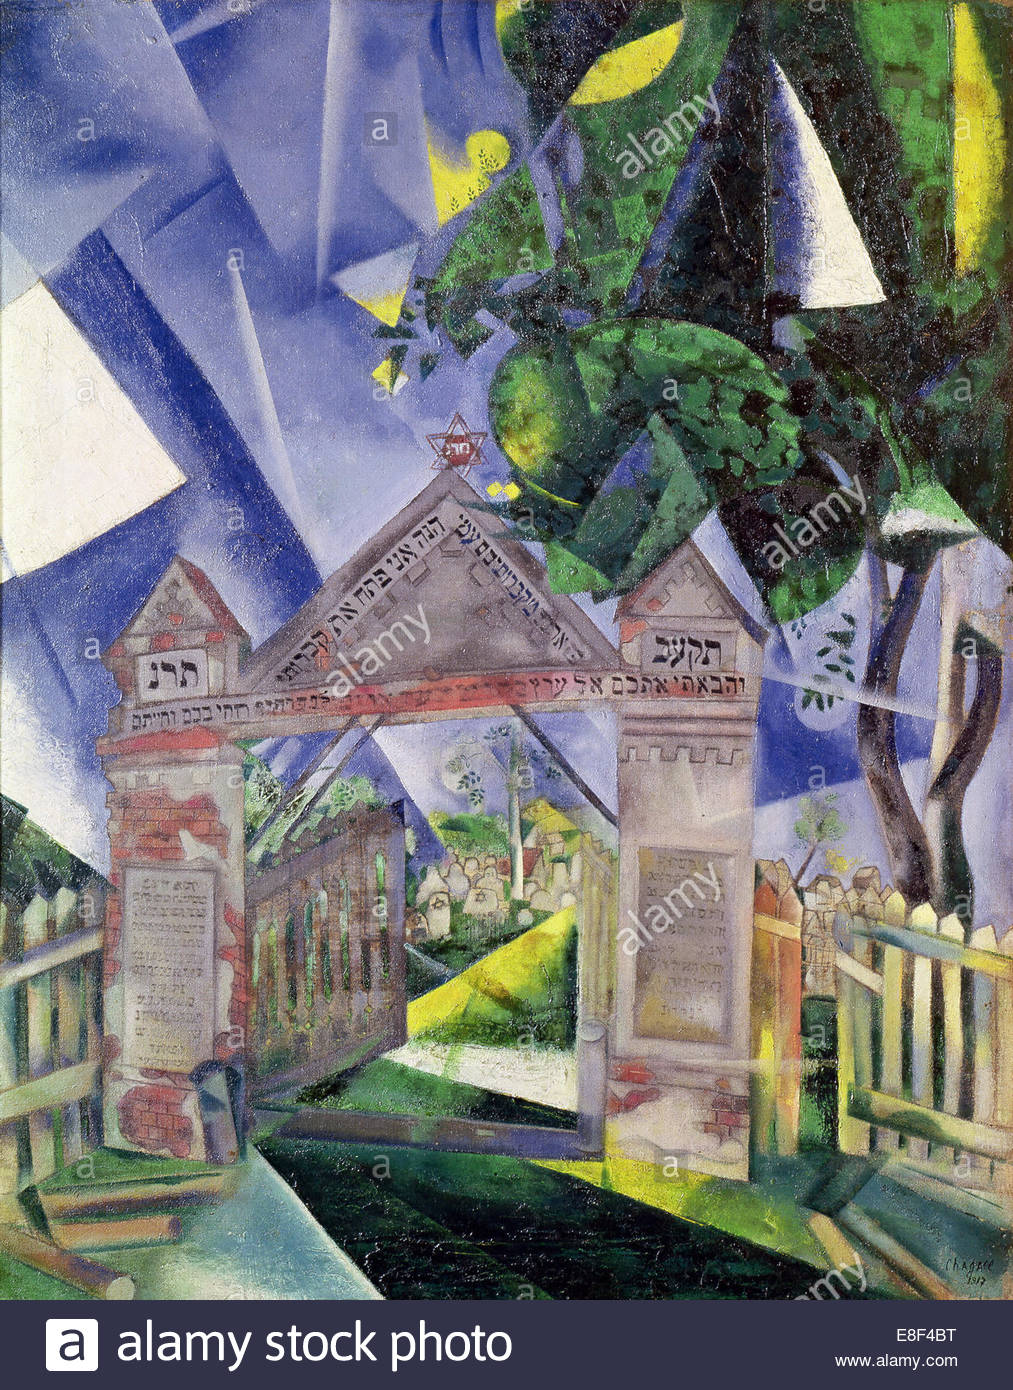 Cemetery Gates. Artist: Chagall, Marc (1887-1985) - Stock Image